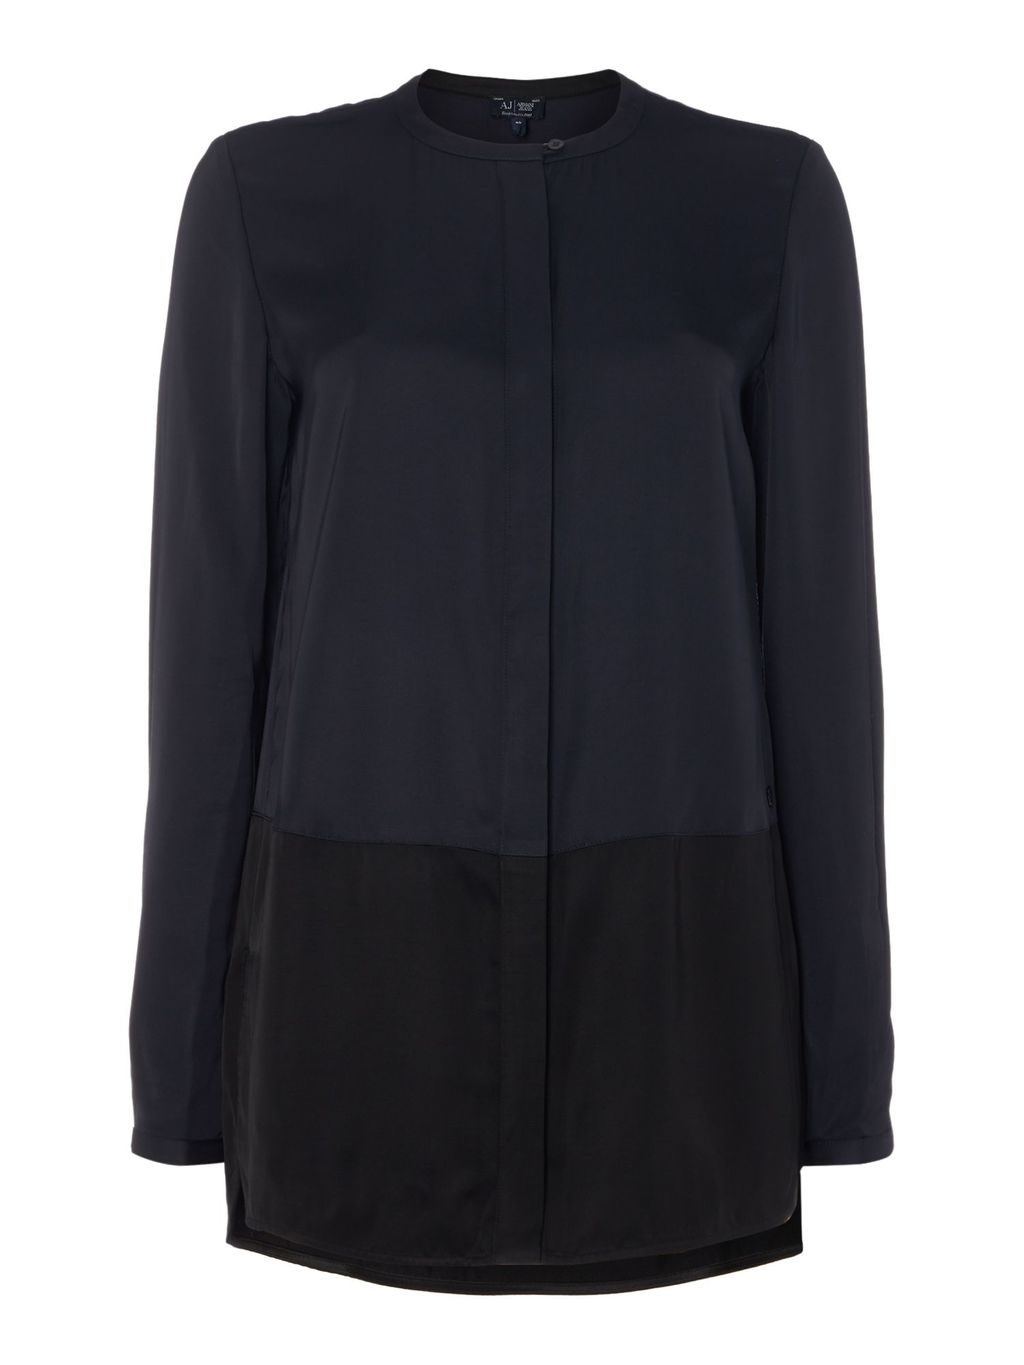 Button Up Collarless Blouse, Navy - pattern: plain; length: below the bottom; style: blouse; predominant colour: navy; secondary colour: black; occasions: casual; neckline: collarstand; fibres: viscose/rayon - 100%; fit: body skimming; sleeve length: long sleeve; sleeve style: standard; pattern type: fabric; texture group: other - light to midweight; multicoloured: multicoloured; season: s/s 2016; wardrobe: basic